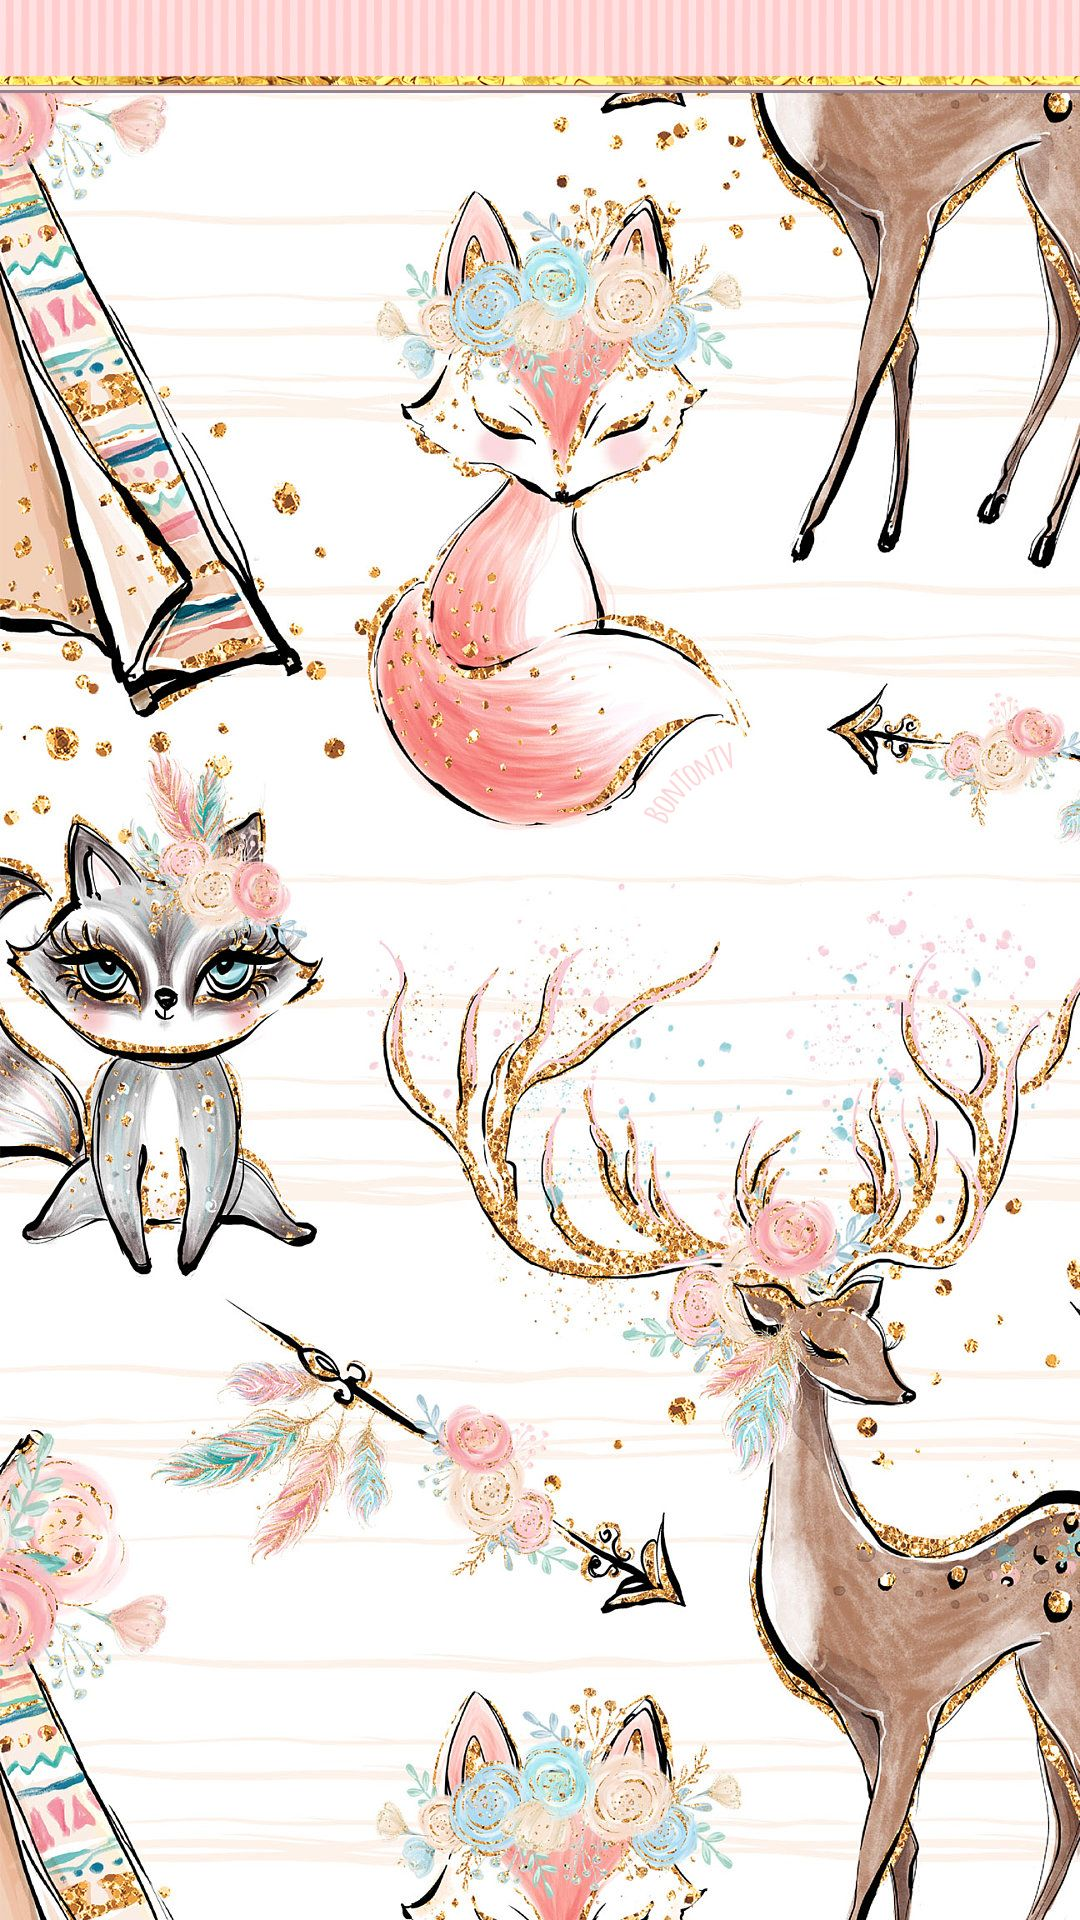 Phone Wallpapers Hd Cute Woodland Animals Pink Gold By Bonton Tv Free Backgrounds 1080x1920 Wallpap Phone Wallpaper Boho Woodland Wallpaper Cute Wallpapers